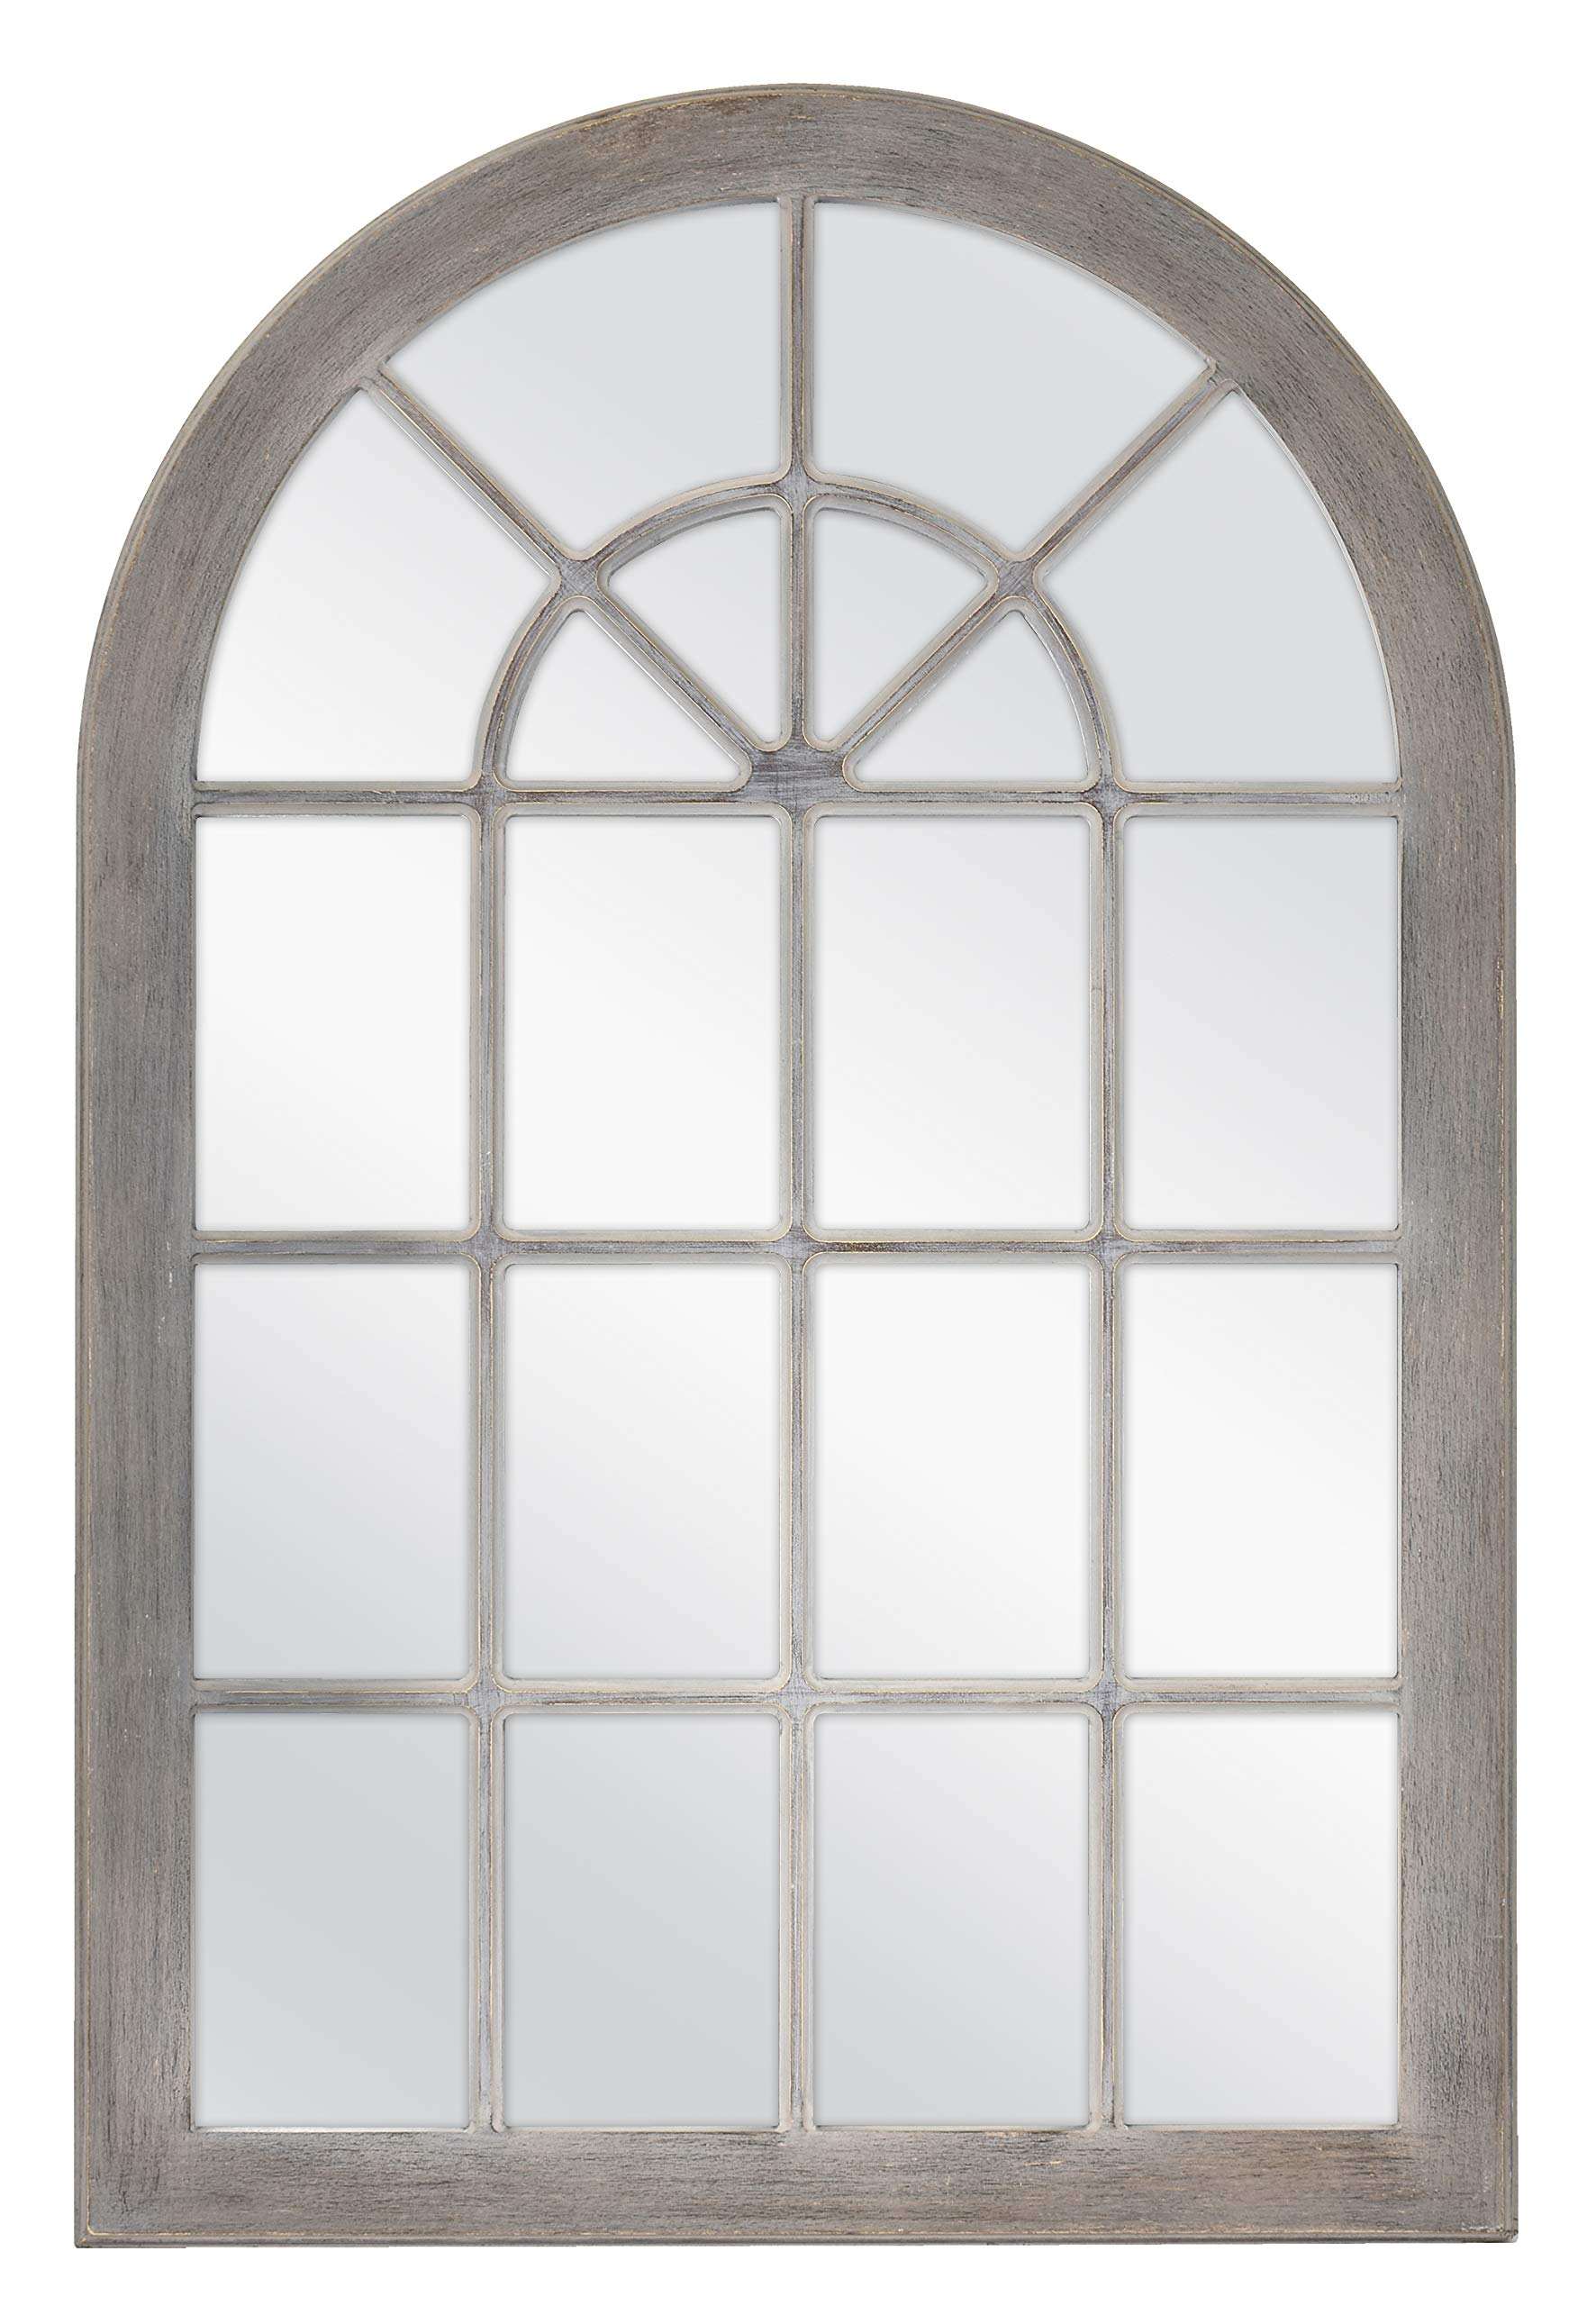 MCS Countryside Arched Windowpane Wall, Gray, 24x36 Inch Overall Size Mirror, by MCS